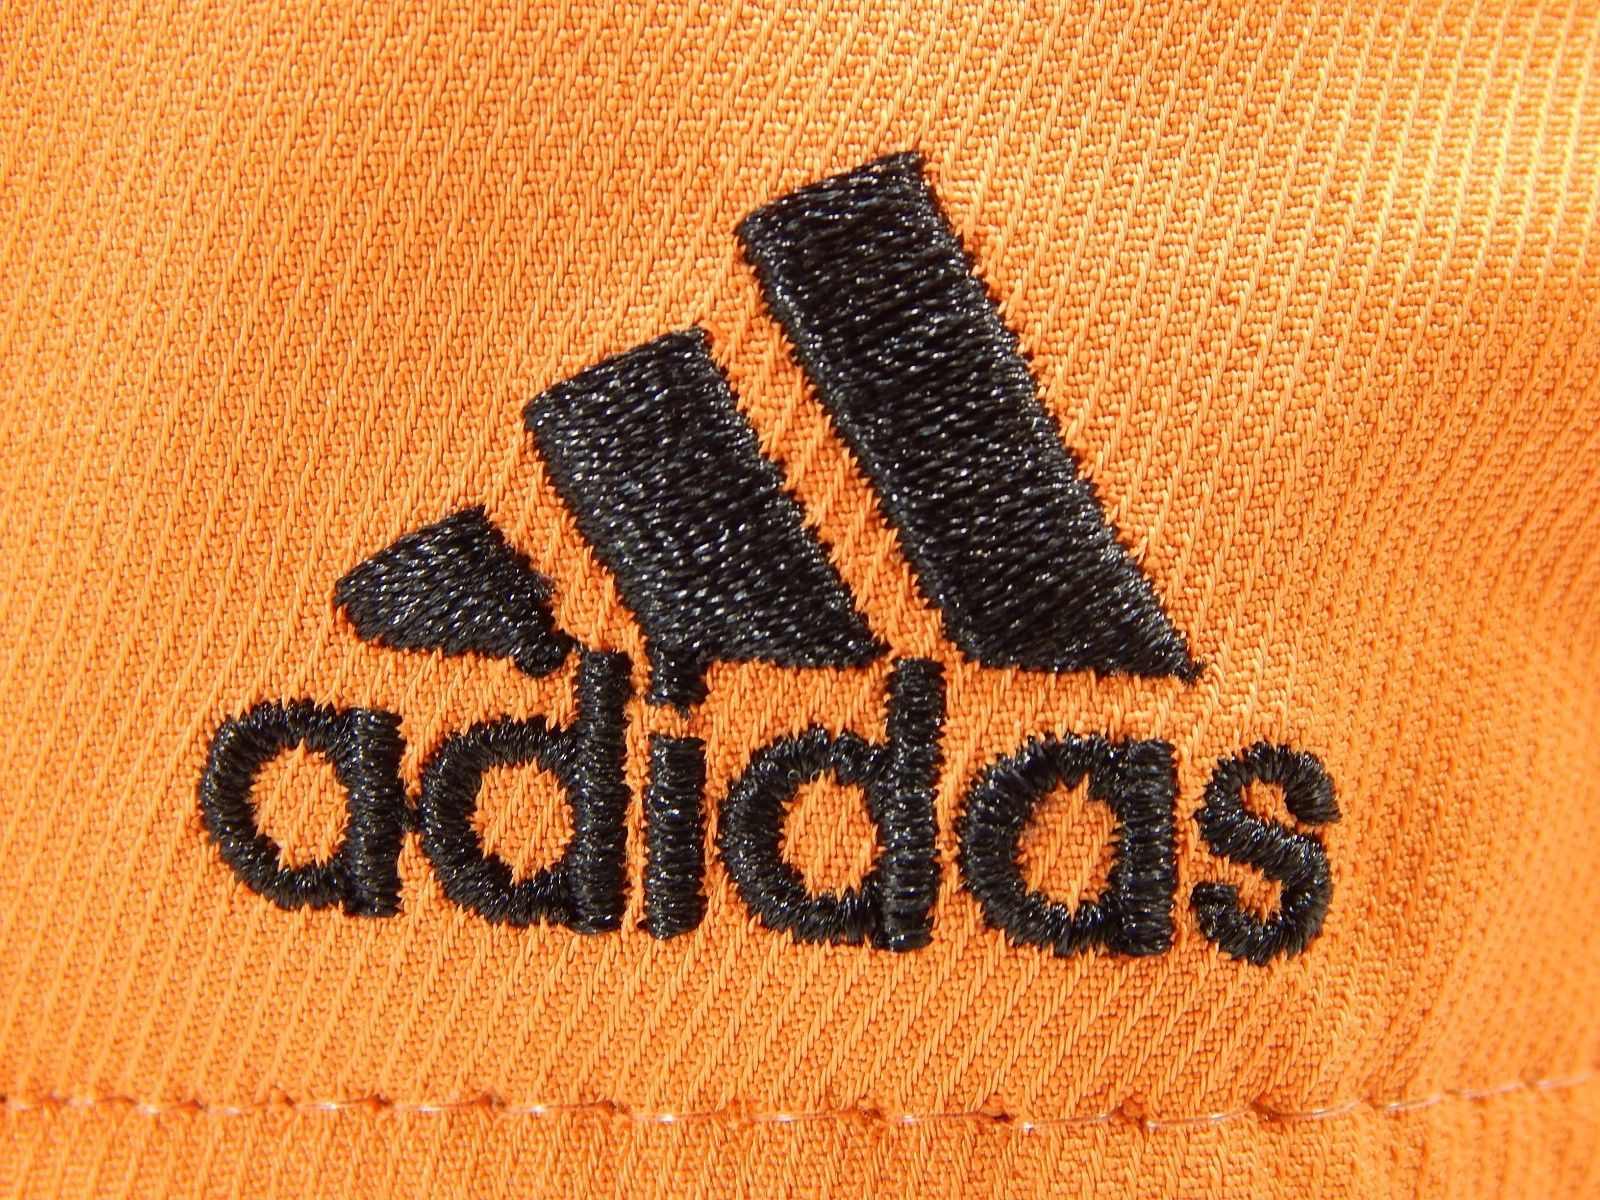 Phoenix Suns Adidas Official NBA Snap Back Curve Brim Cap Hat NEW!